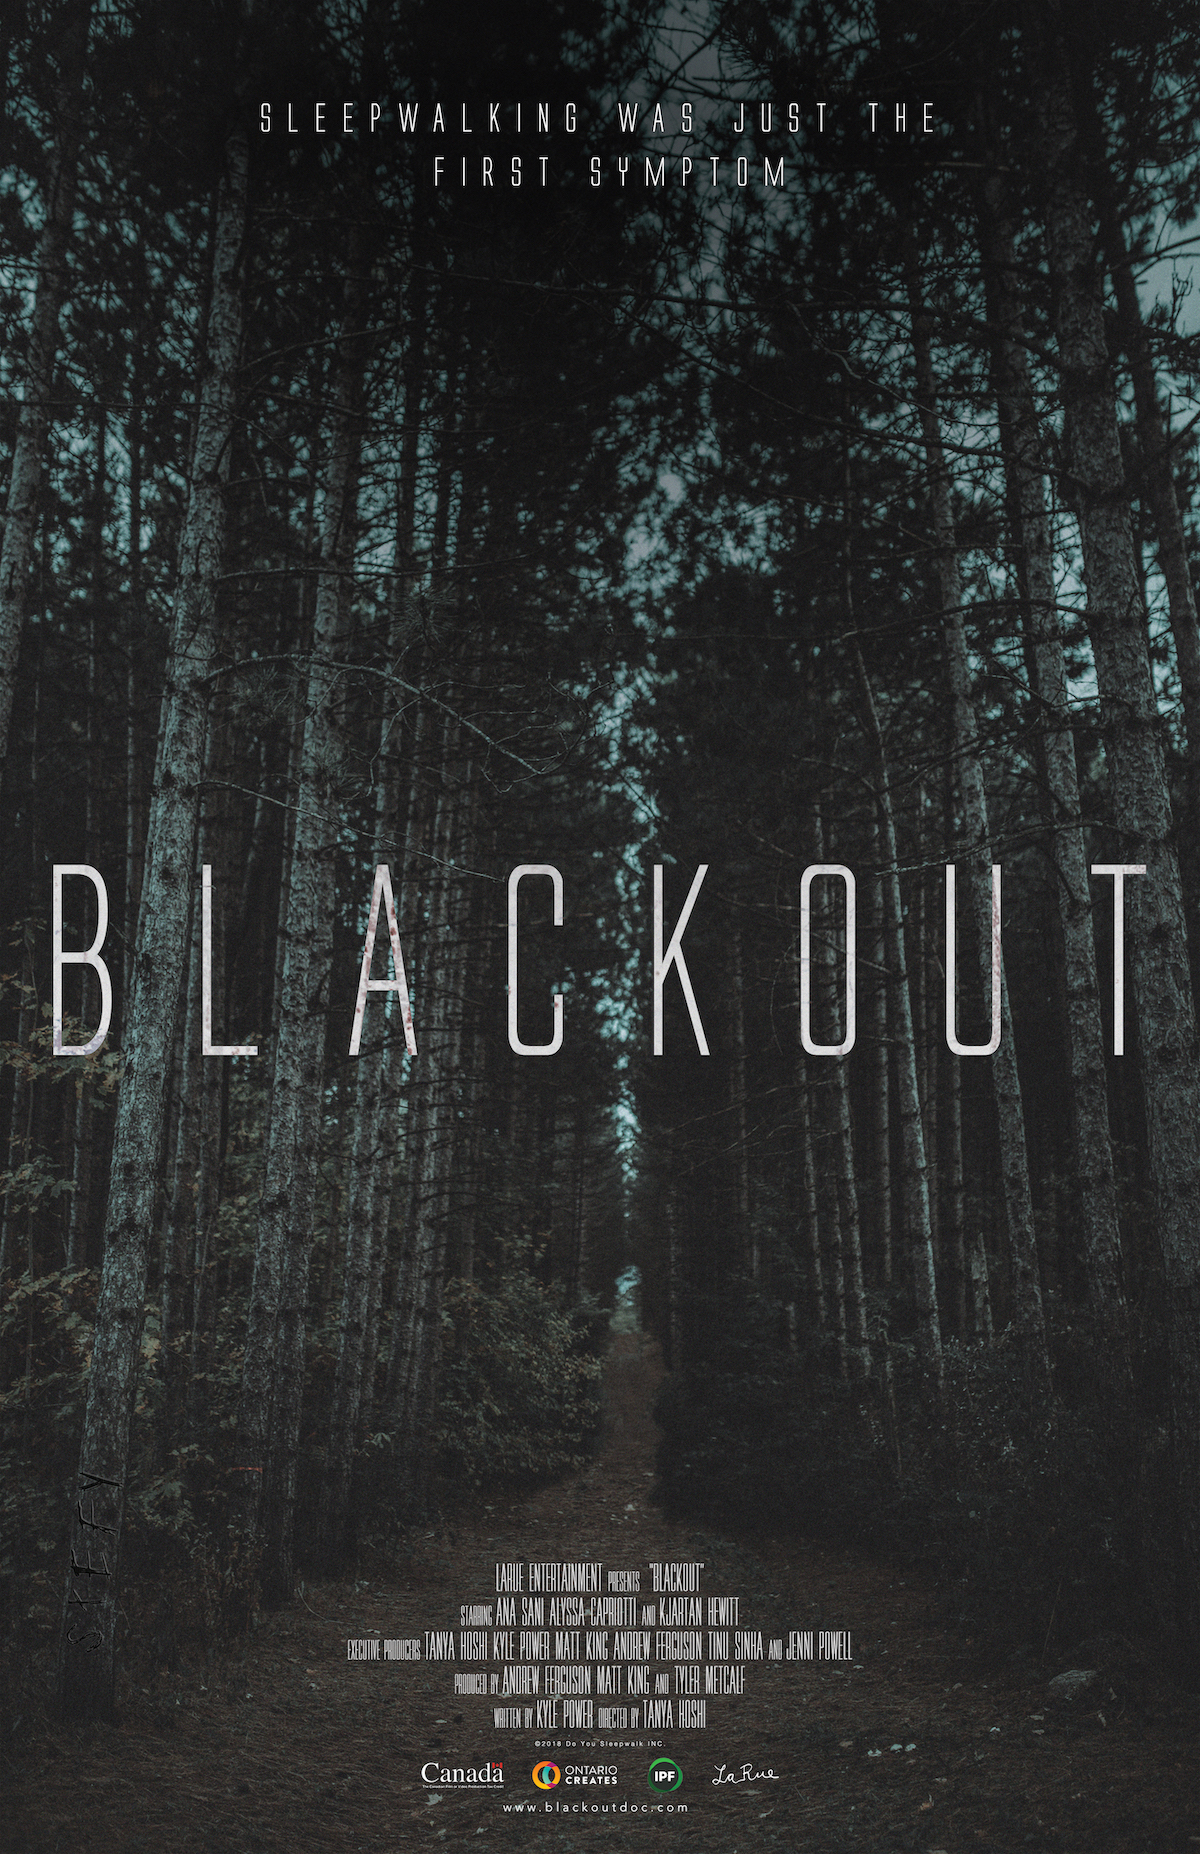 BLACKOUT-POSTER-STEFY_NOV21.jpg